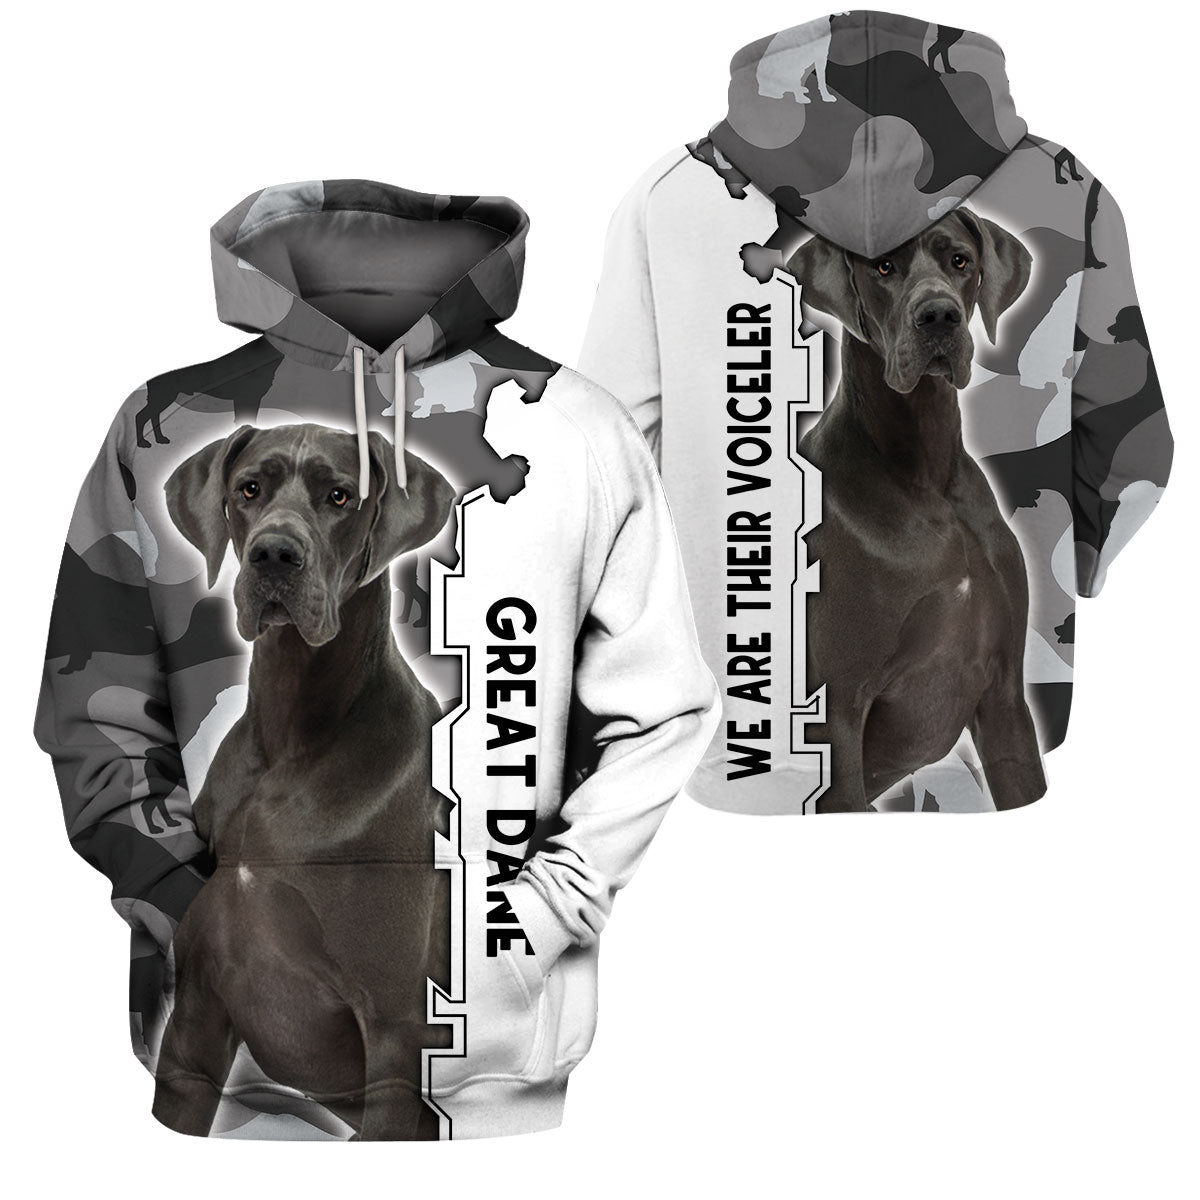 3d Apparel - We Are Their Voiceler - Great Dane -NS